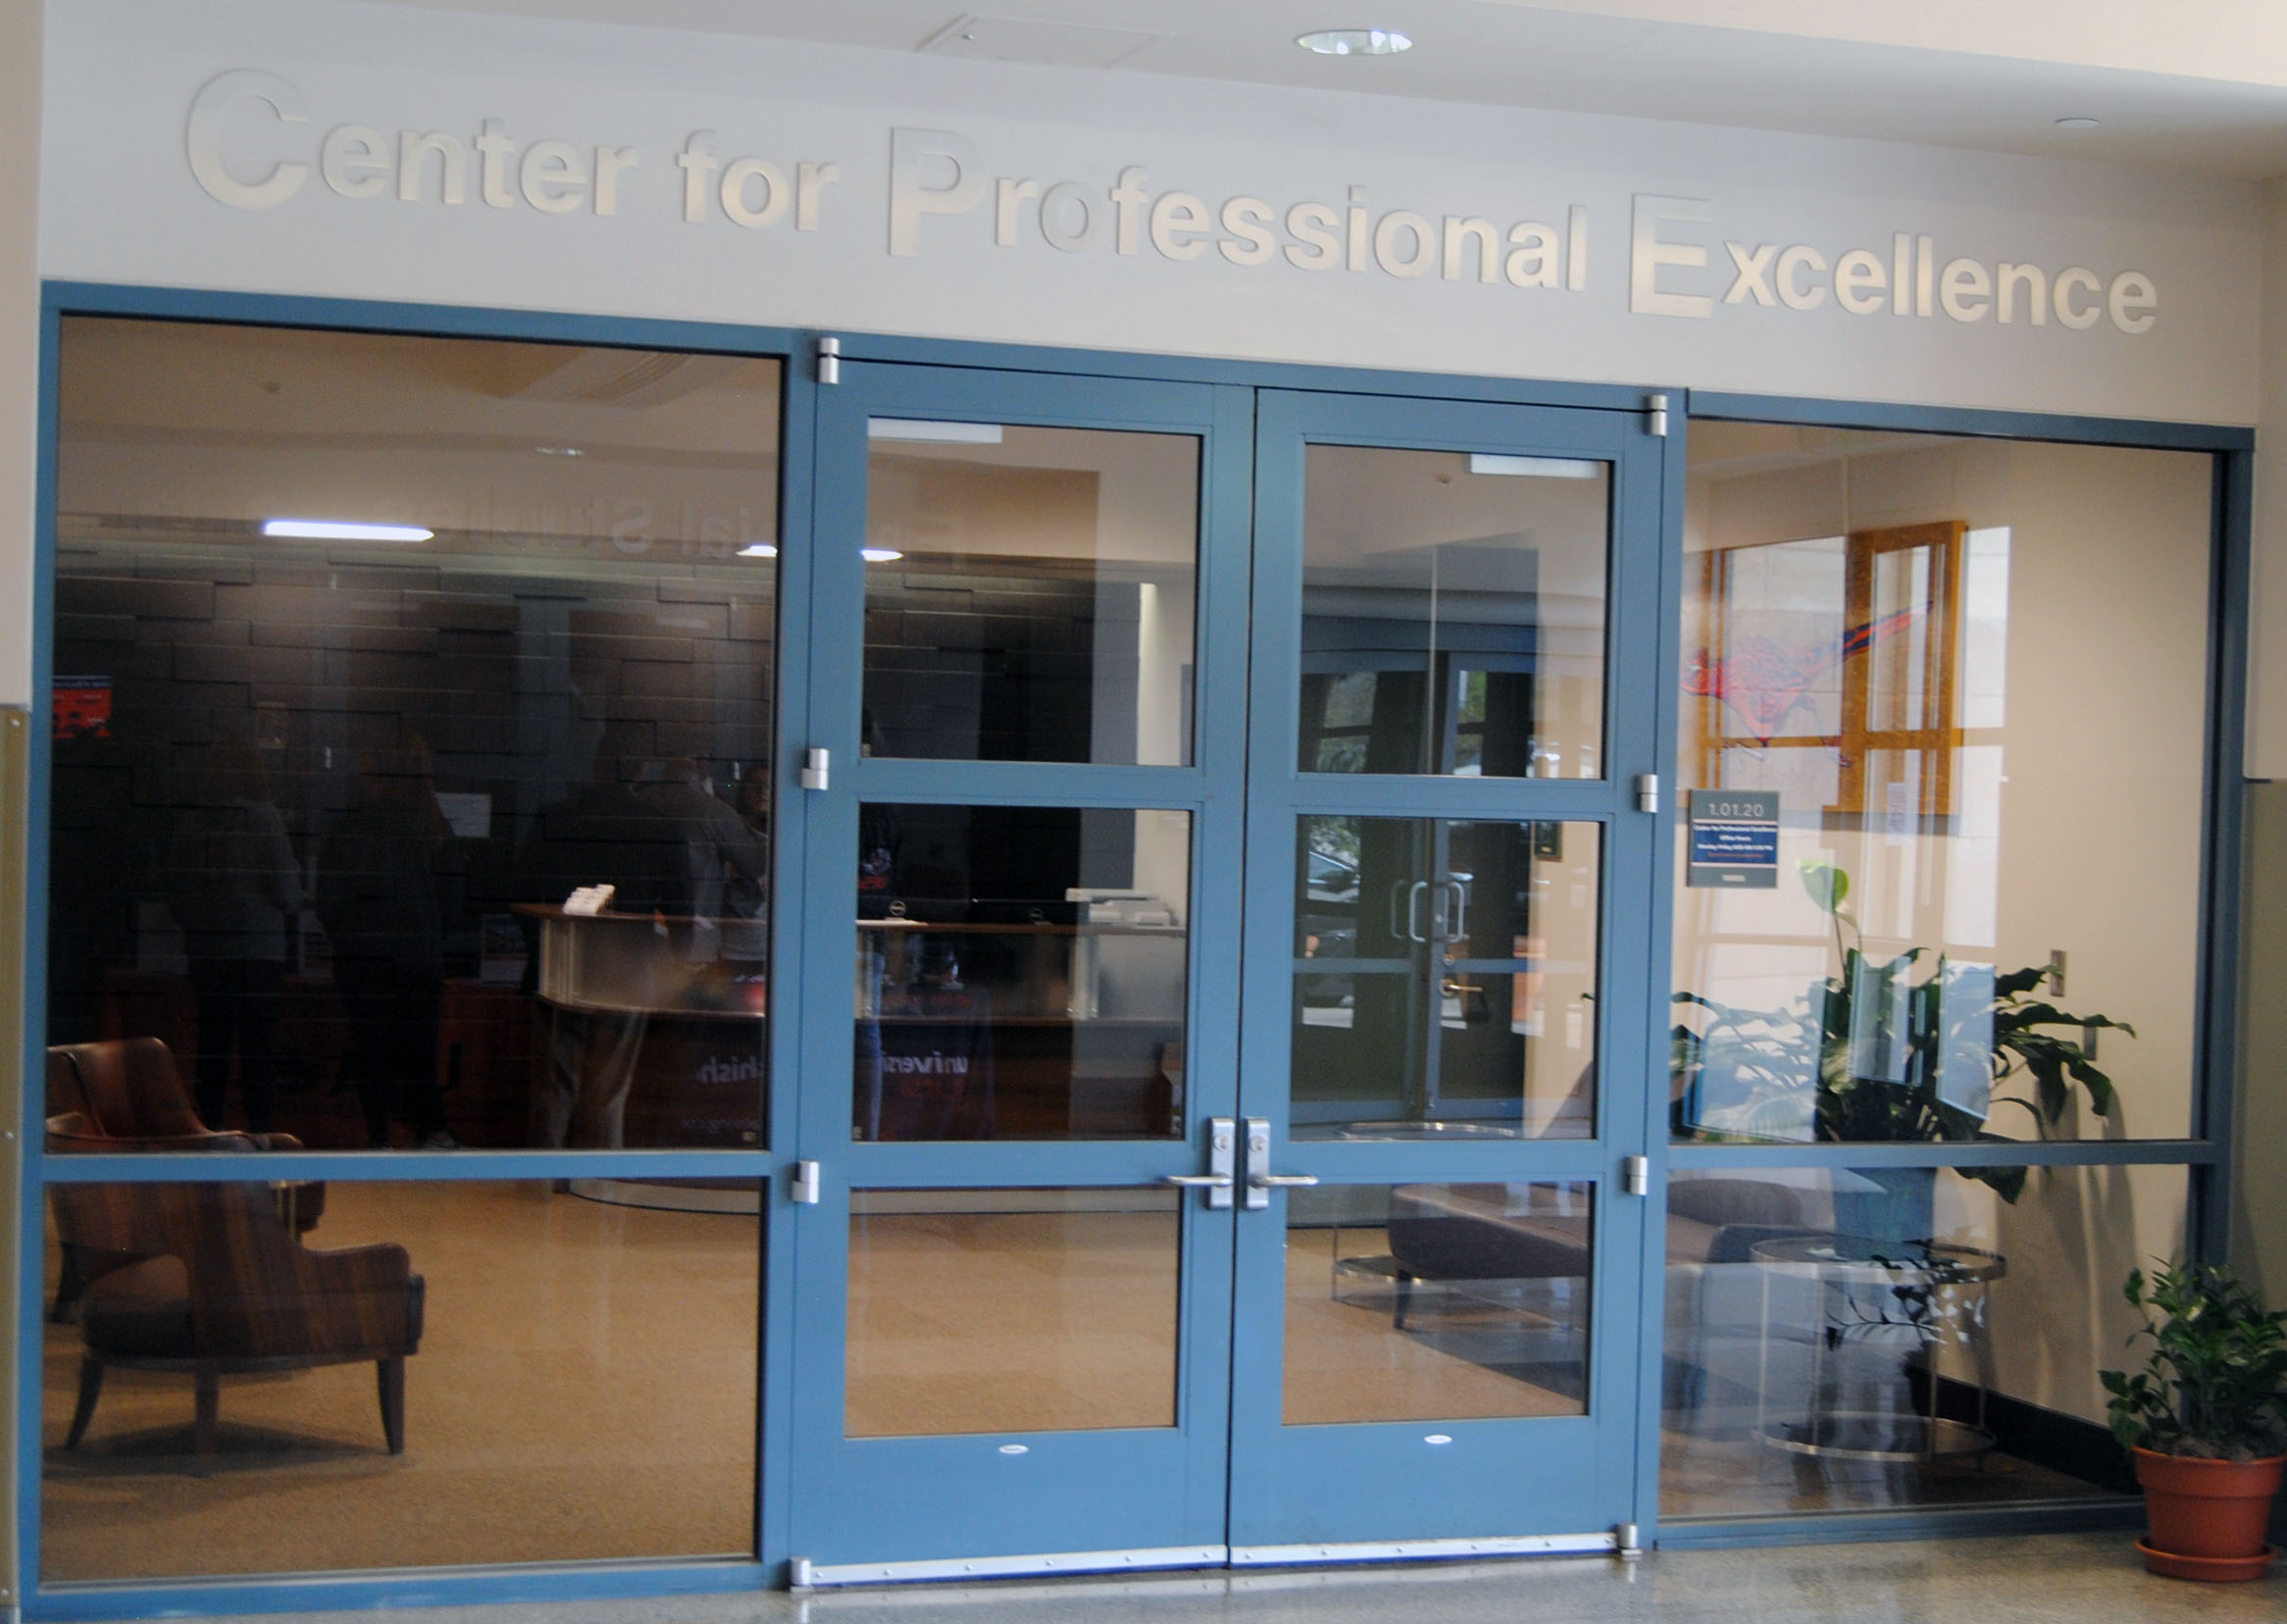 The Center for Professional Excellence (CPE)